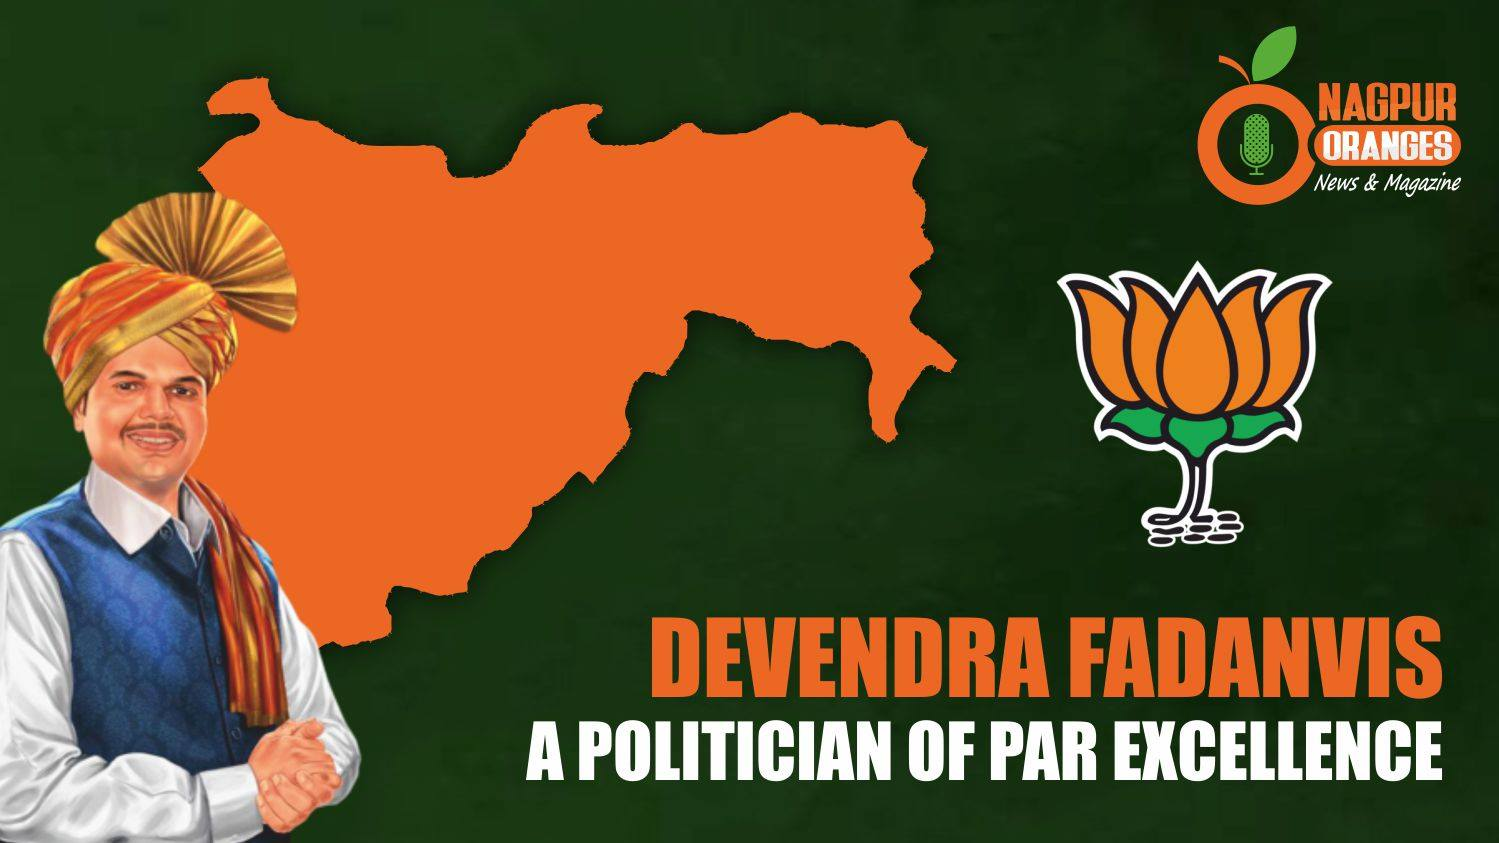 Photo of Devendra Fadanvis a politician of par excellence